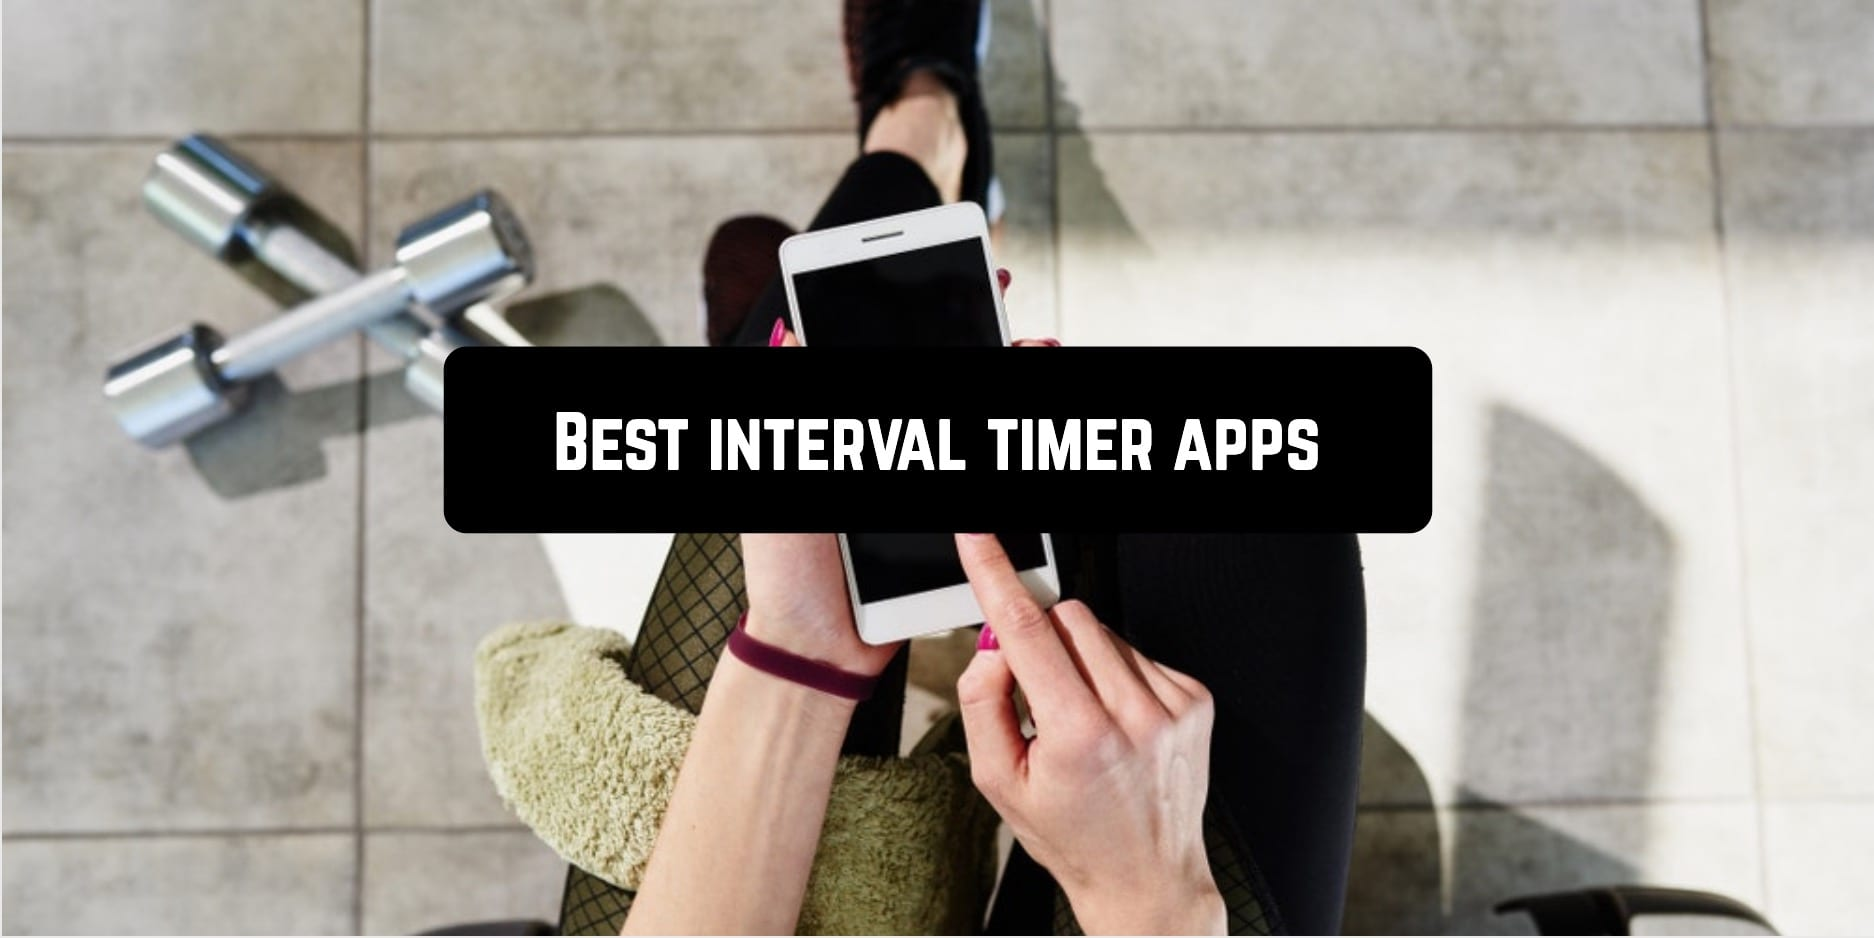 Best interval timer apps